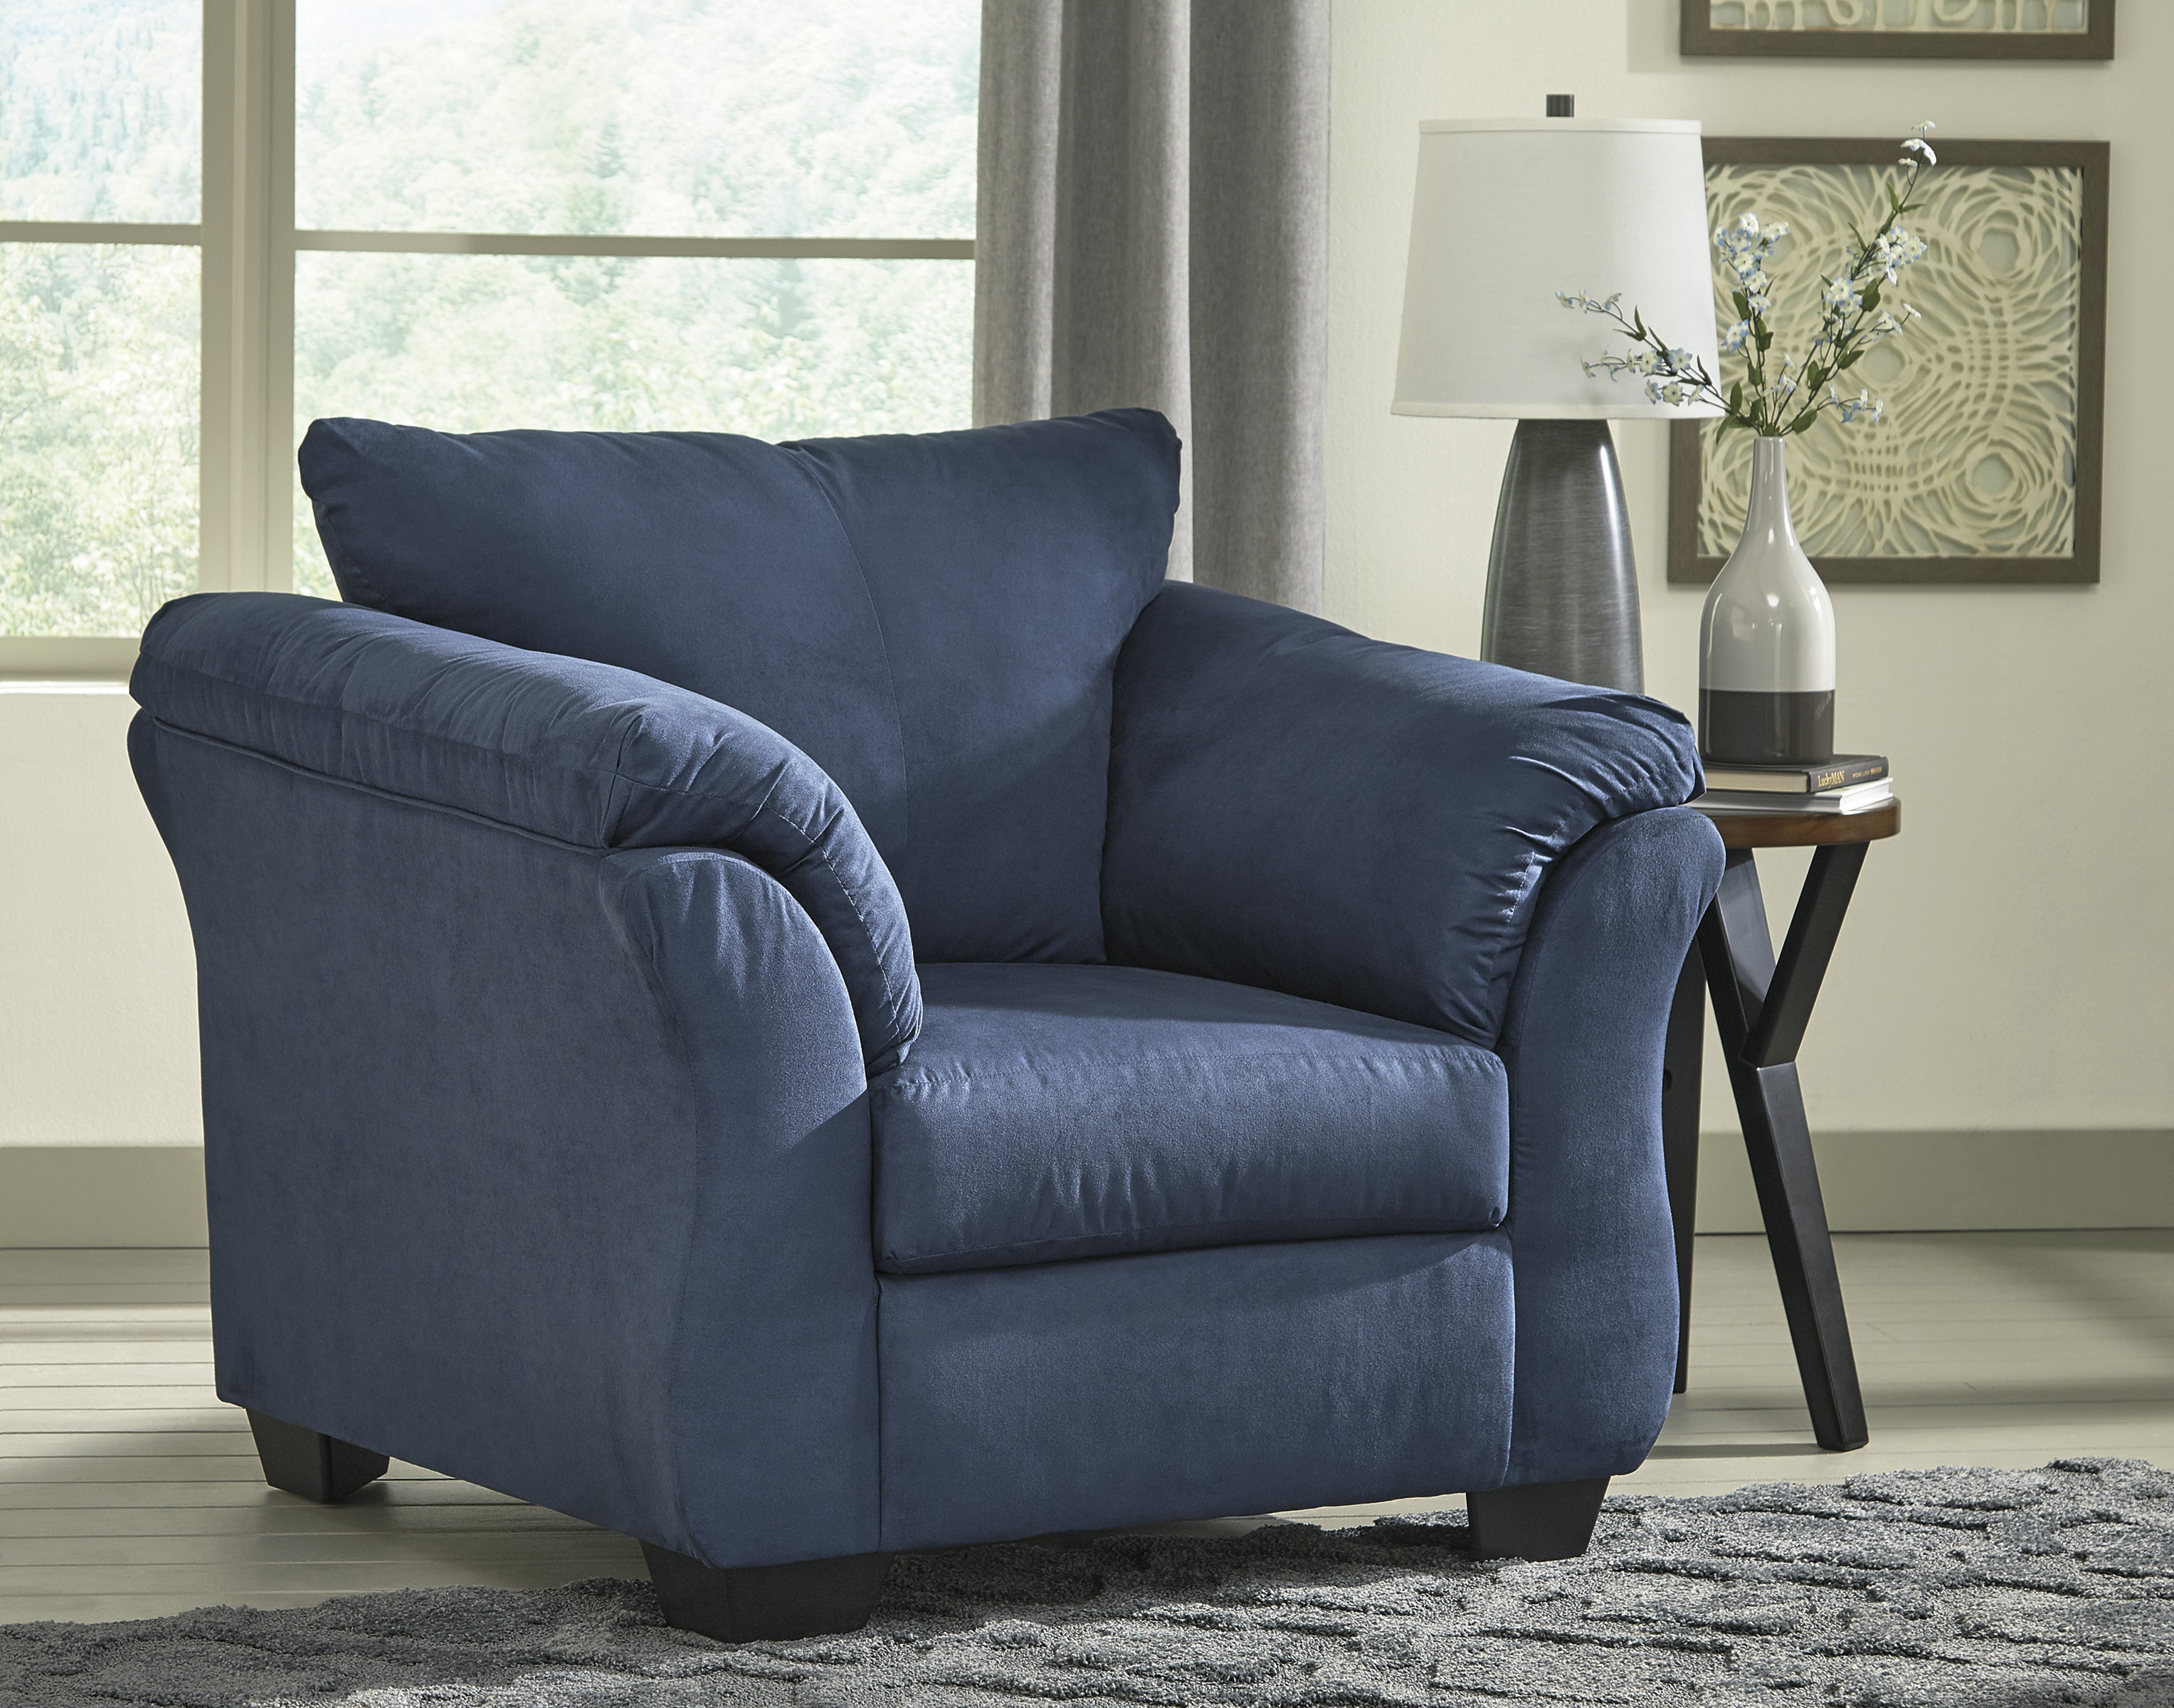 Darcy Blue Stationary Chair  / $12.99 A Week